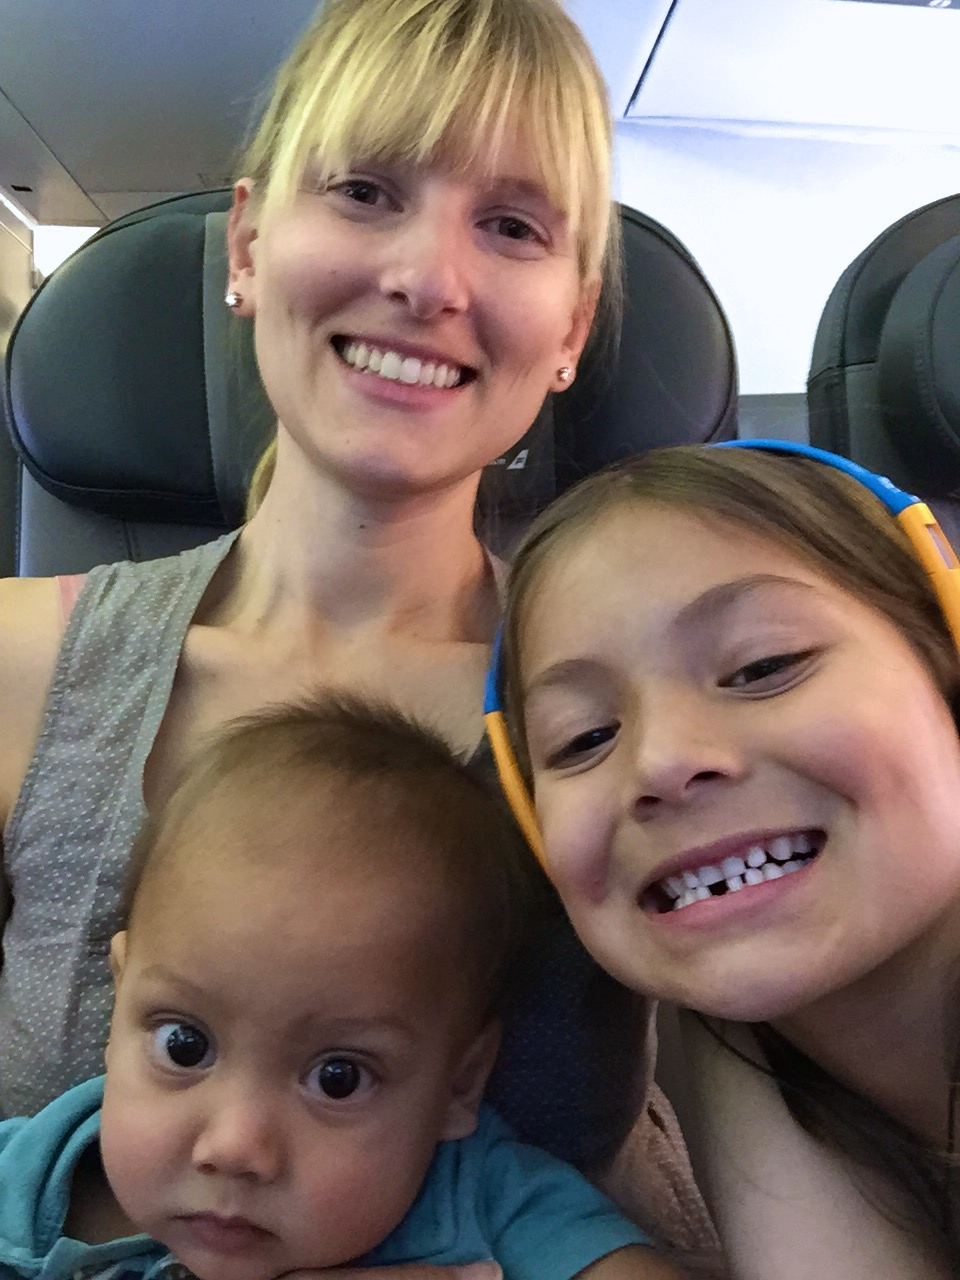 A selfie during our flight (my three-year-old might have been sleeping)